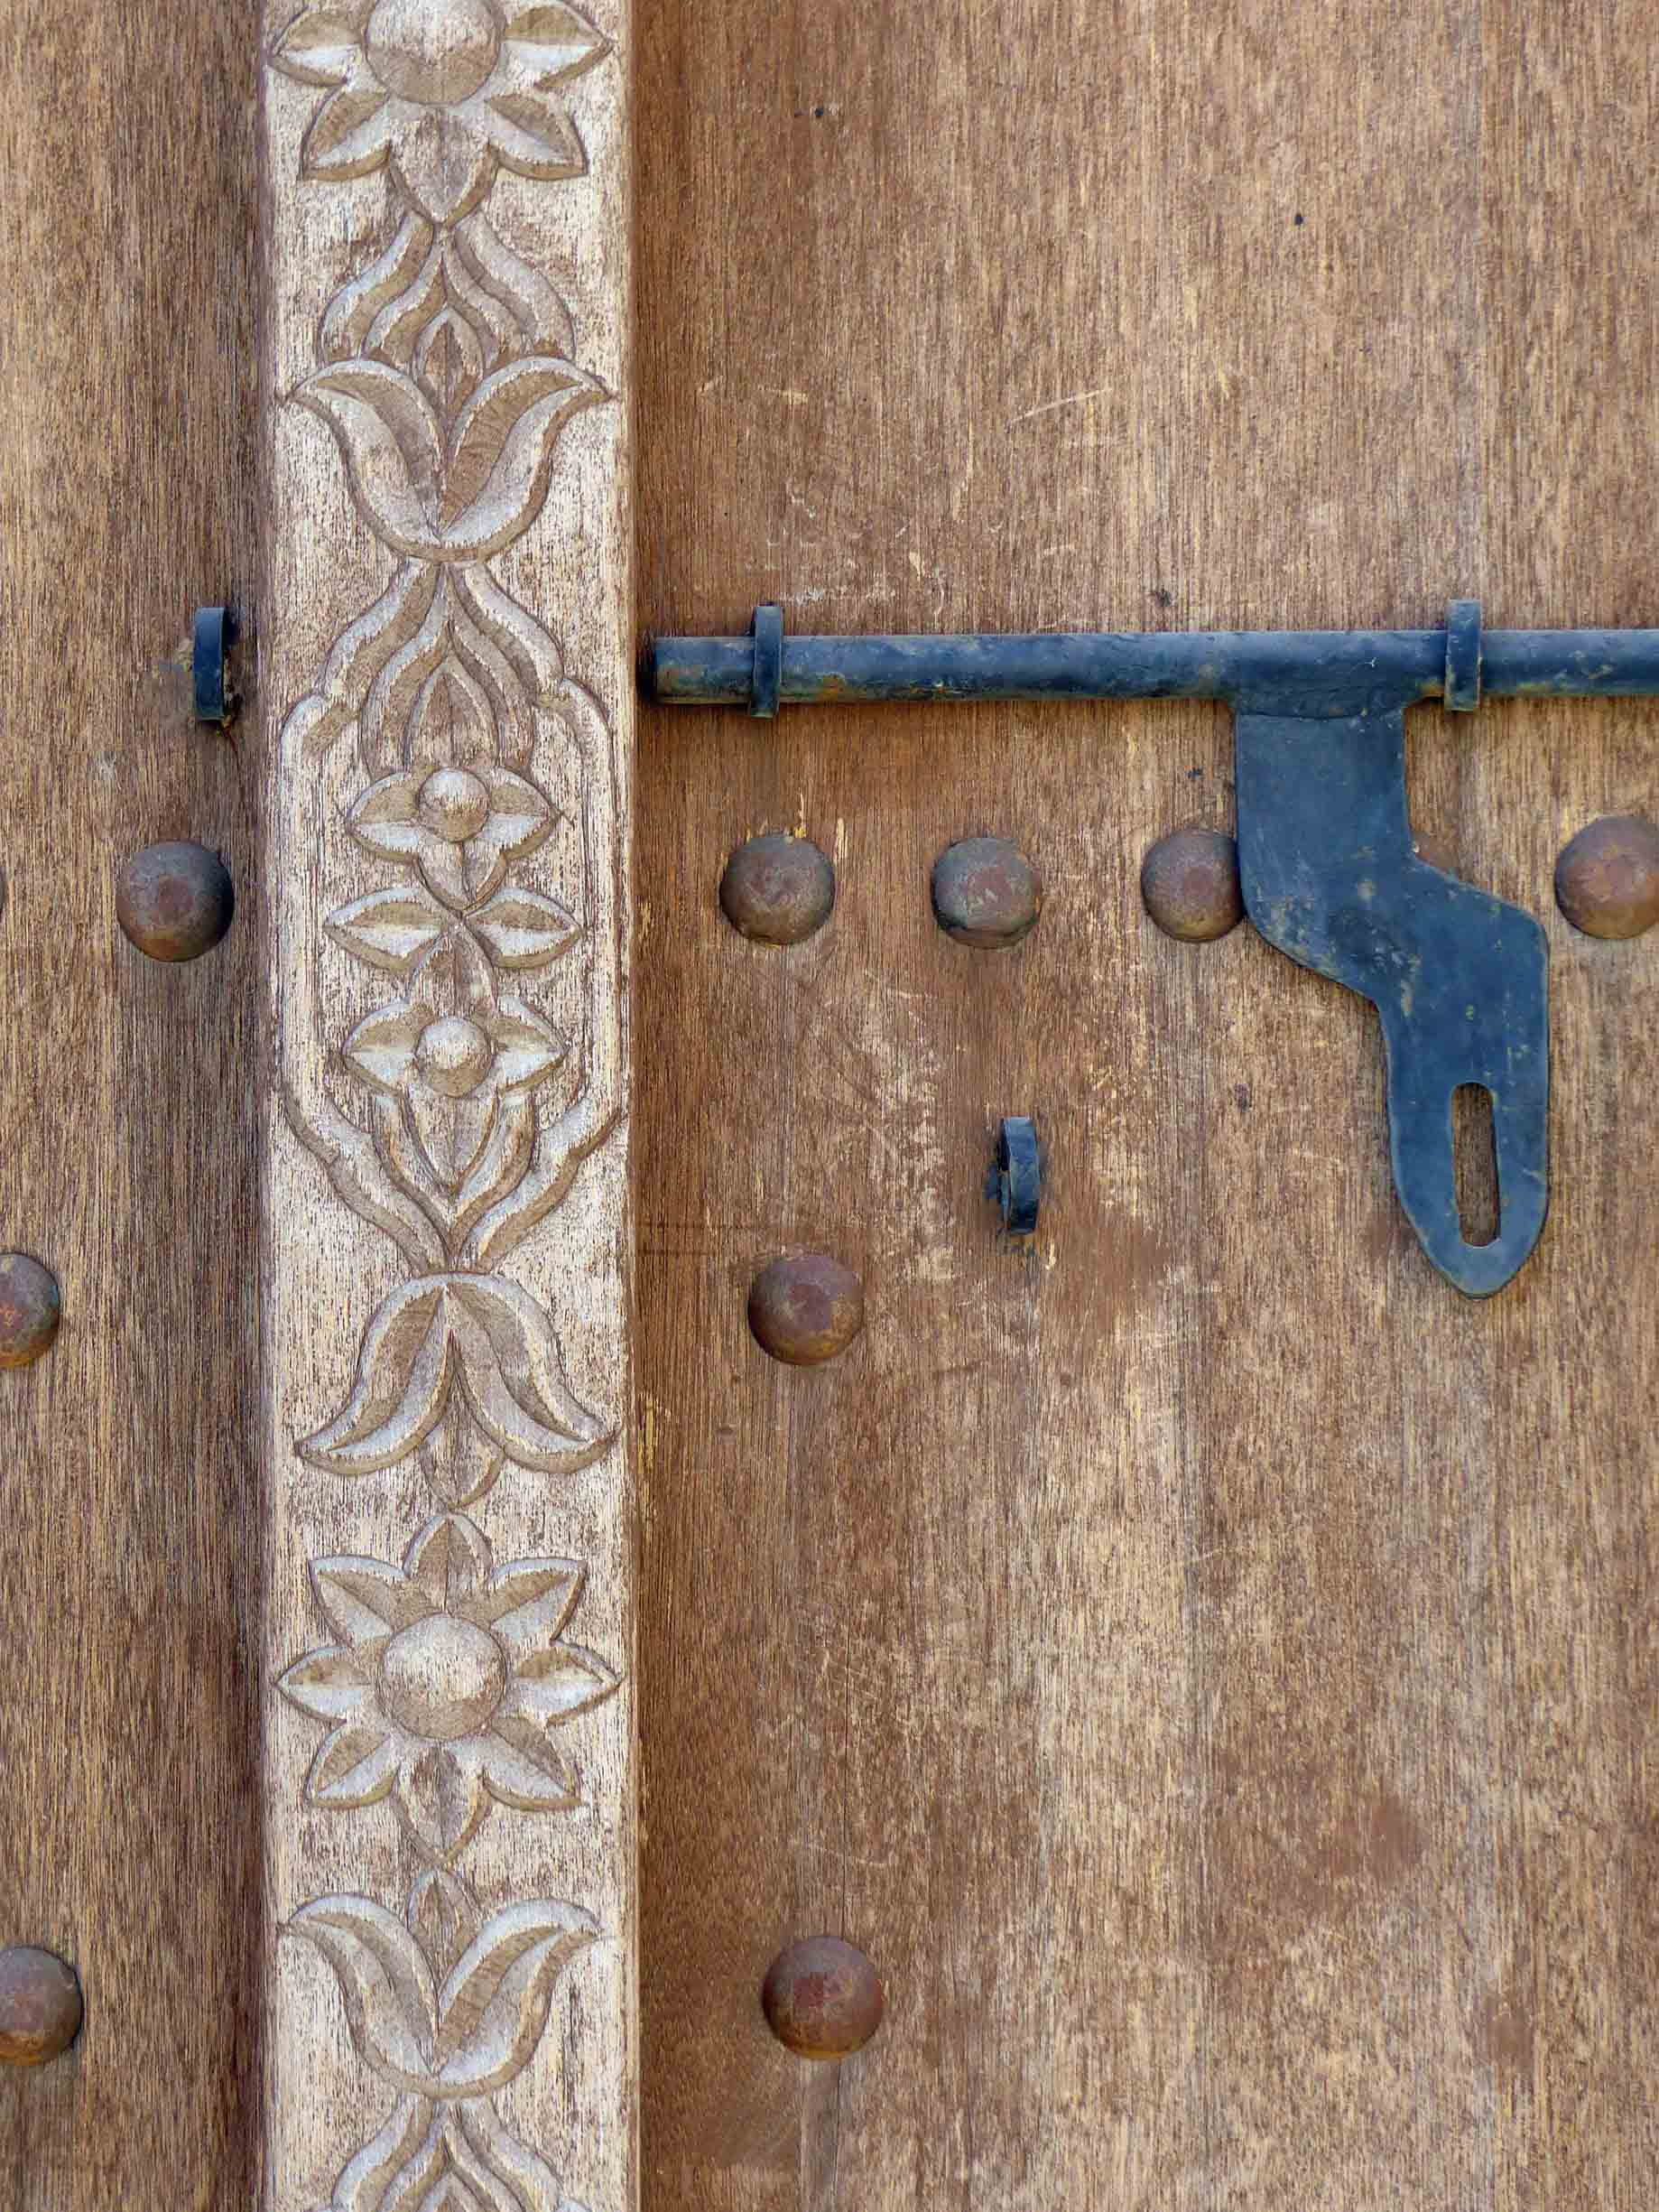 Carved wood and metal latch